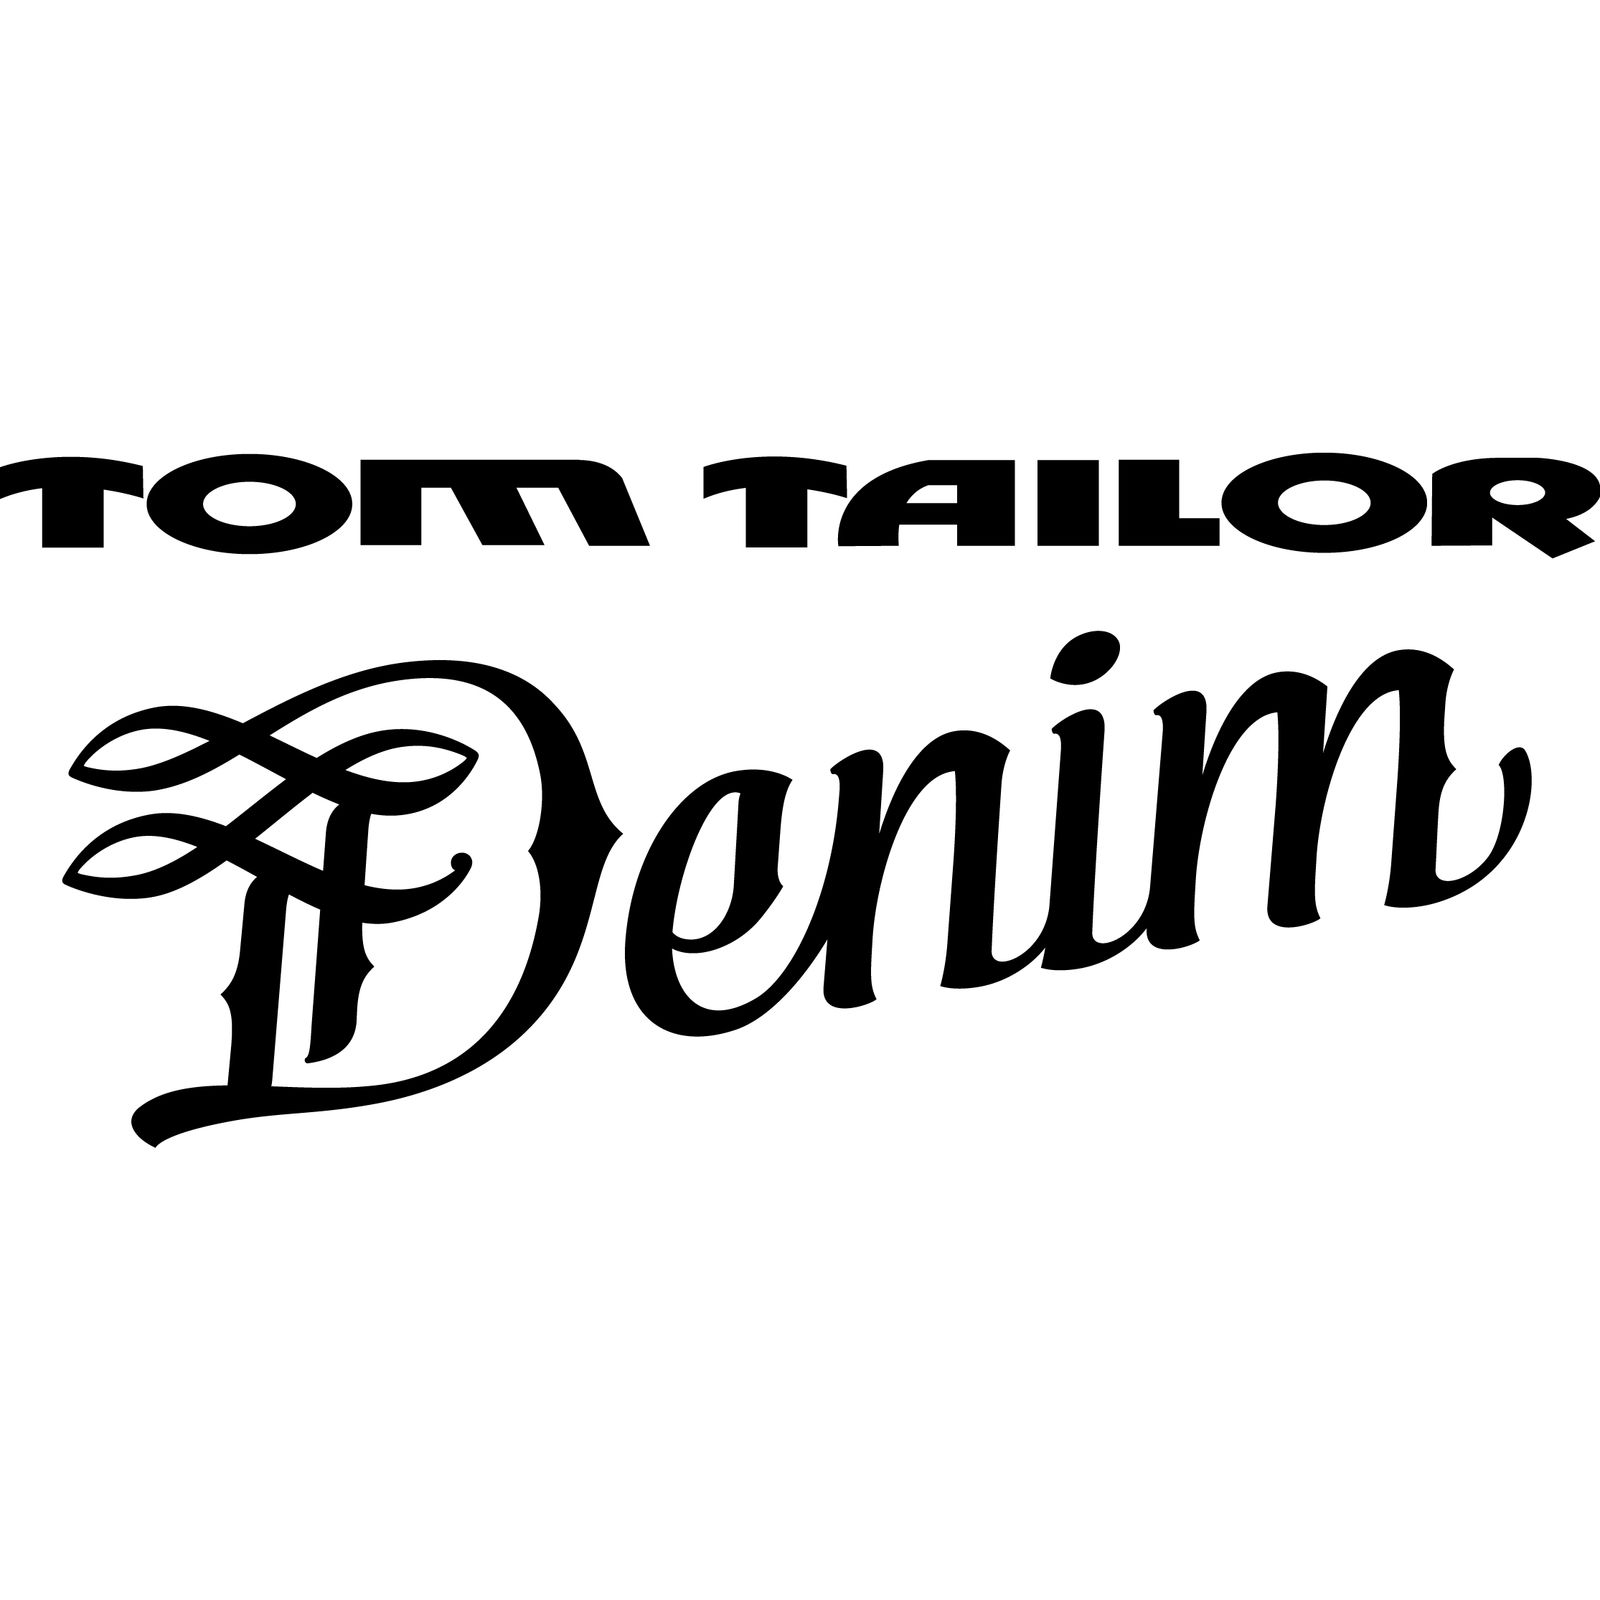 TOM TAILOR Denim (Image 1)